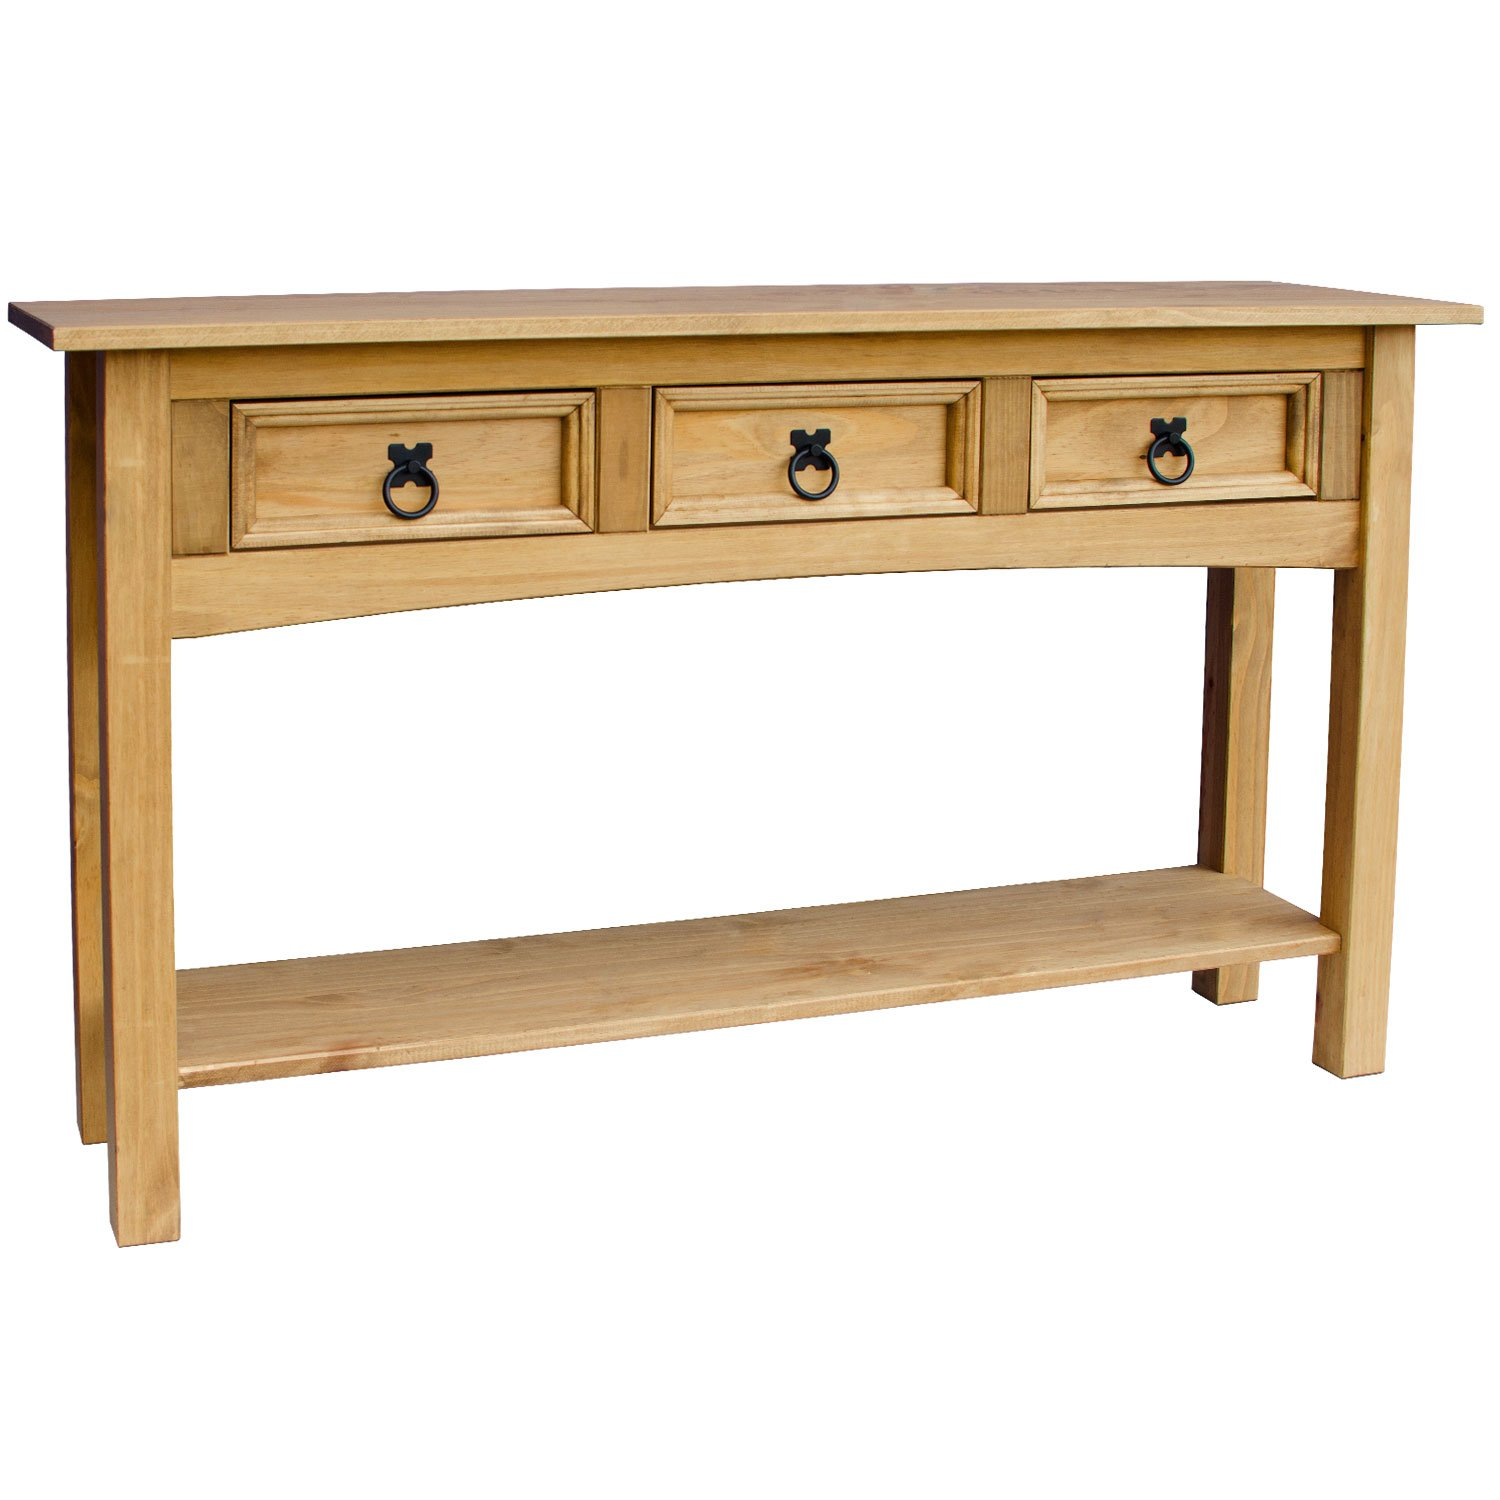 home discount corona console table  drawer with  shelf solid  - home discount corona console table  drawer with  shelf solid pine woodamazoncouk kitchen  home